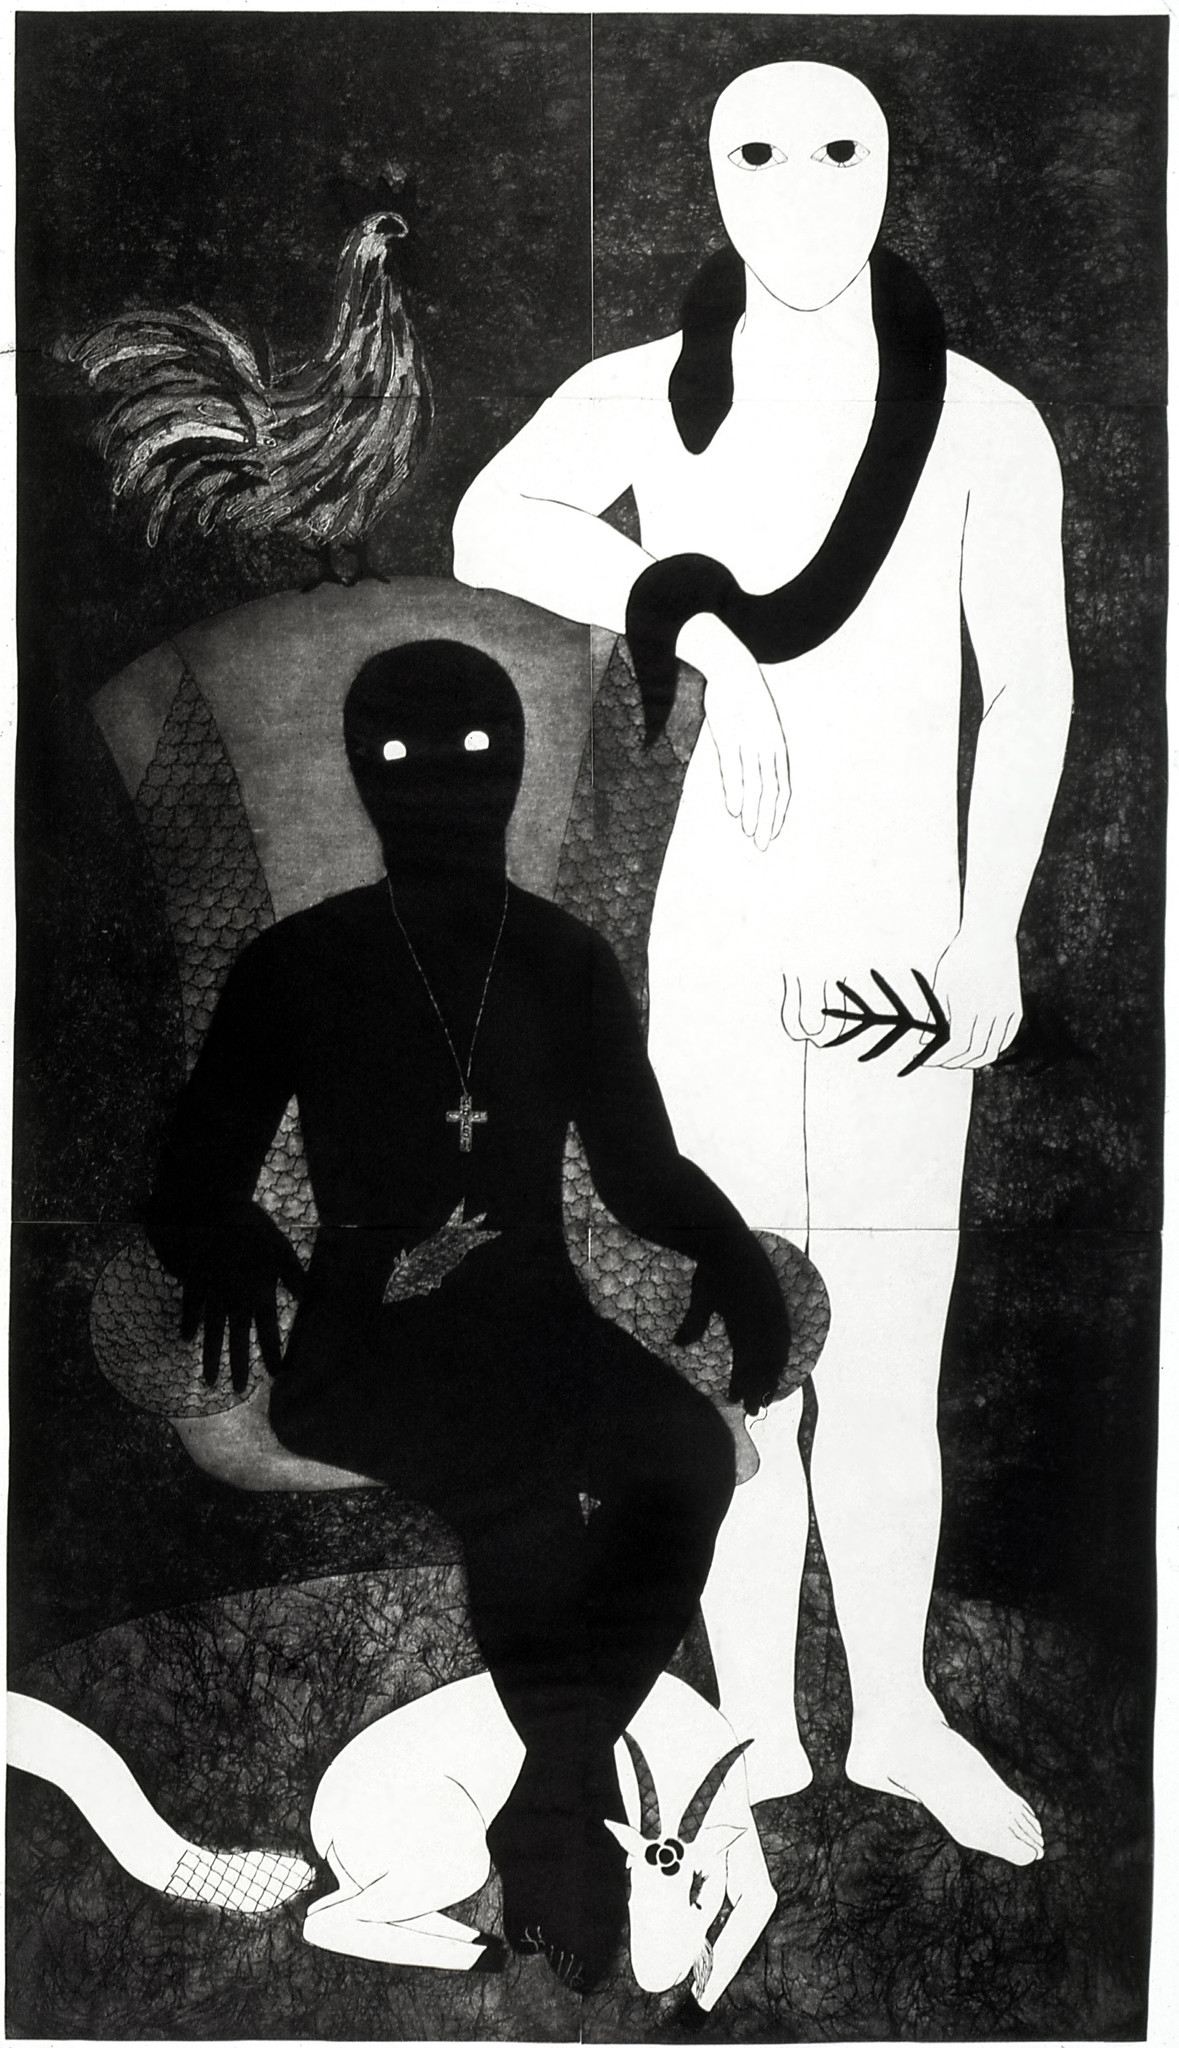 """La familia"" (""The Family""), 1991"